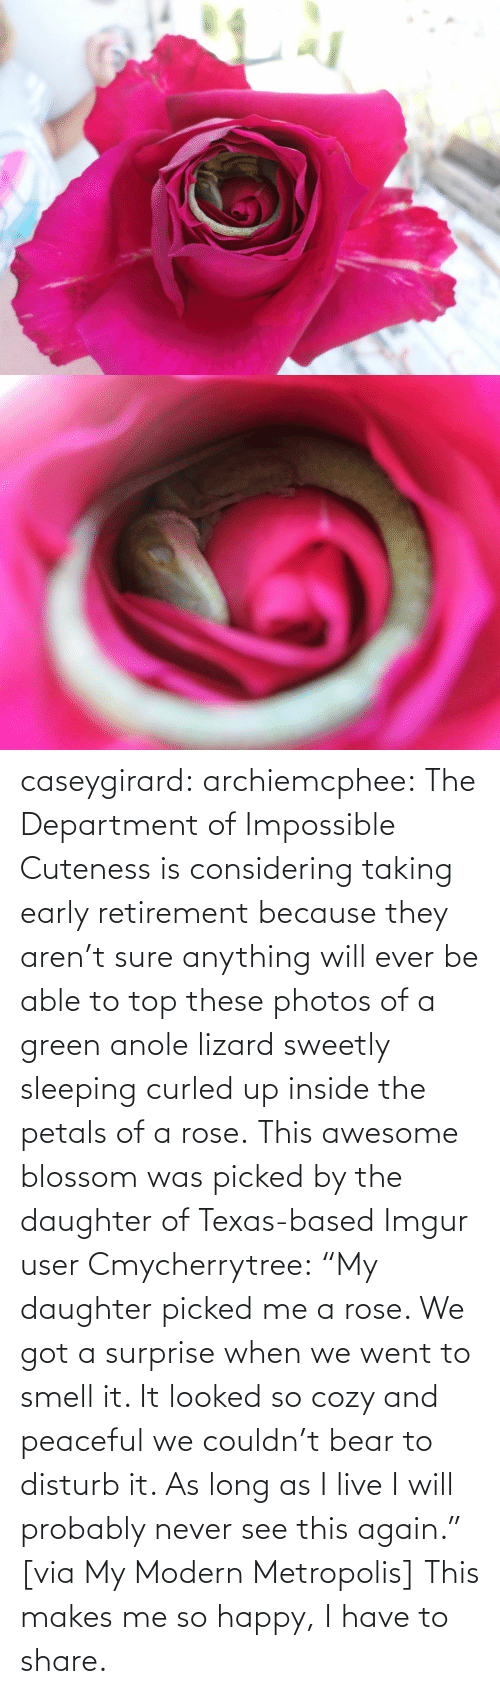 "Awesome: caseygirard:  archiemcphee:   The Department of Impossible Cuteness is considering taking early retirement because they aren't sure anything will ever be able to top these photos of a green anole lizard sweetly sleeping curled up inside the petals of a rose. This awesome blossom was picked by the daughter of Texas-based Imgur user Cmycherrytree: ""My daughter picked me a rose. We got a surprise when we went to smell it. It looked so cozy and peaceful we couldn't bear to disturb it. As long as I live I will probably never see this again."" [via My Modern Metropolis]   This makes me so happy, I have to share."